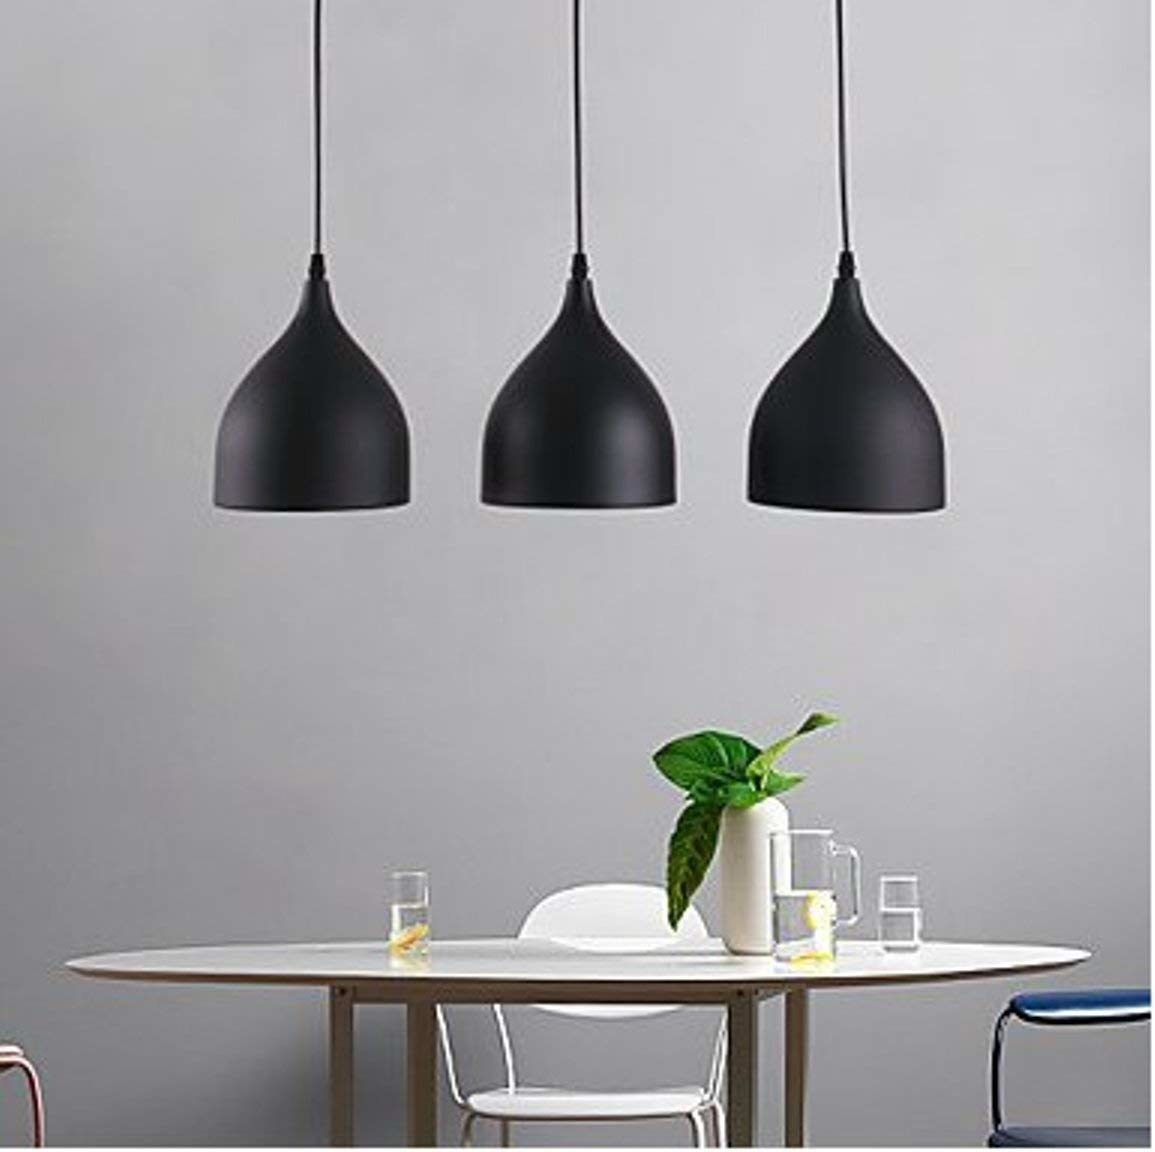 A set of 3 black lamps over a table